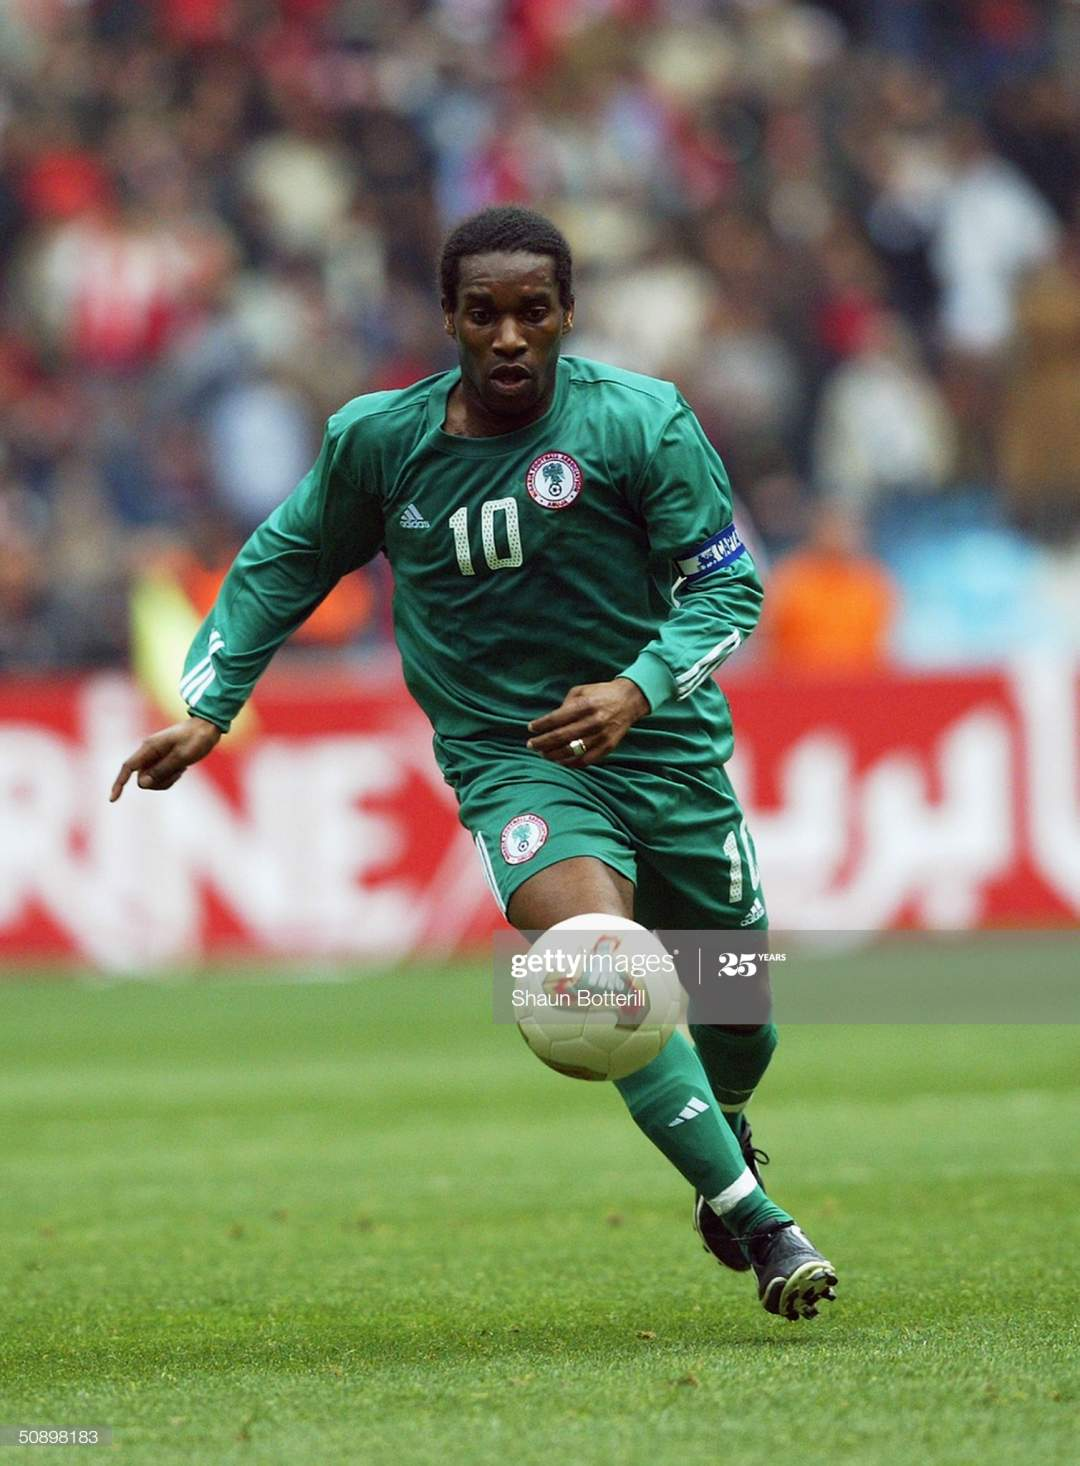 Jay Jay Okocha Of Nigeria Runs With The Ball During The African Cup Picture Id50898183?s=28